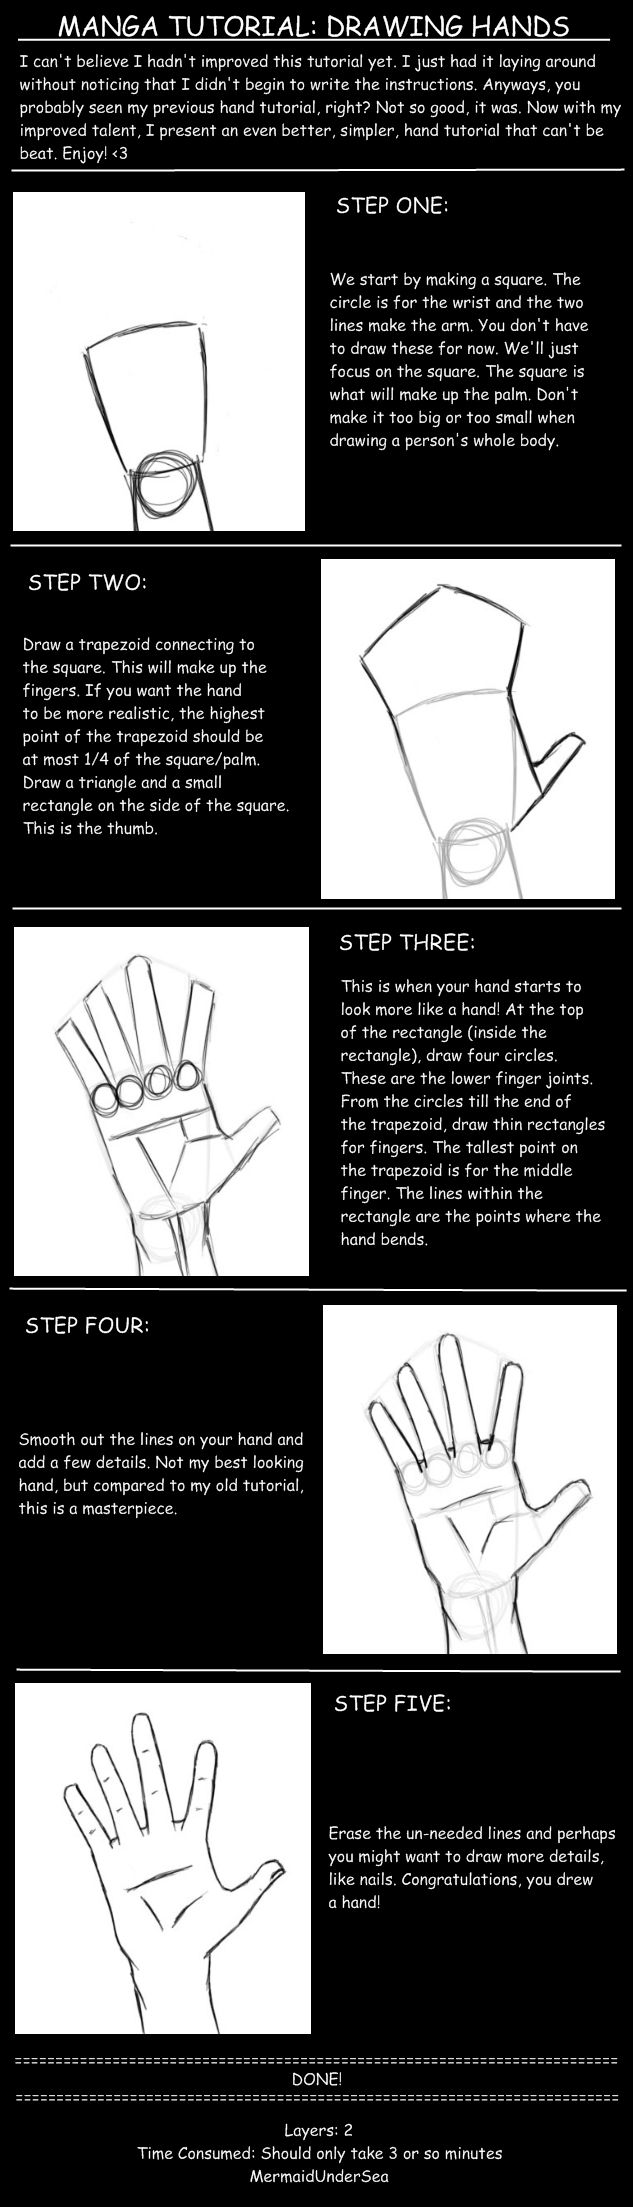 Manga Tutorial- Hands by MermaidUnderSea on deviantART